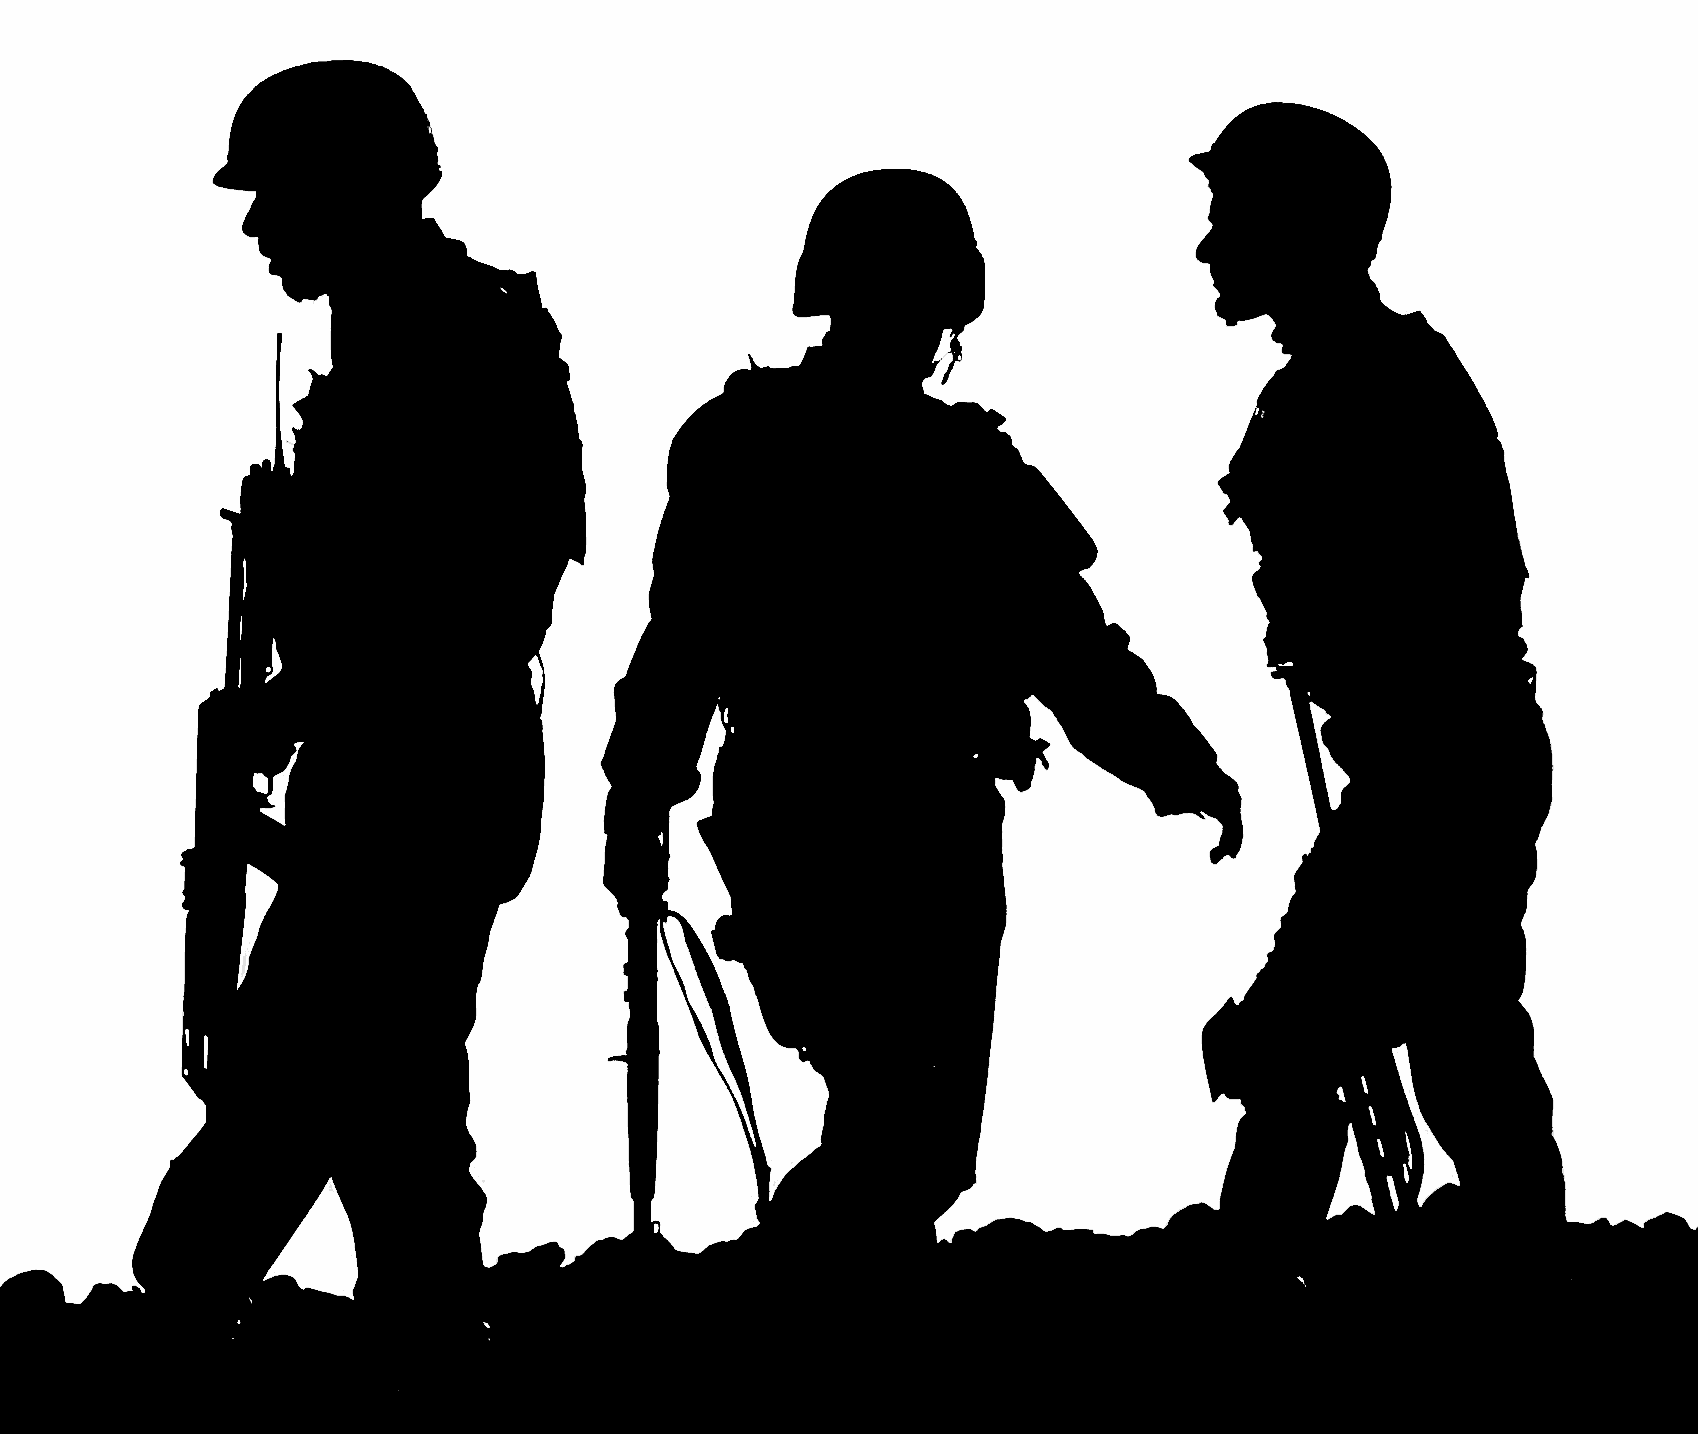 Free Army Silhouette Png, Download Free Clip Art, Free Clip Art on.